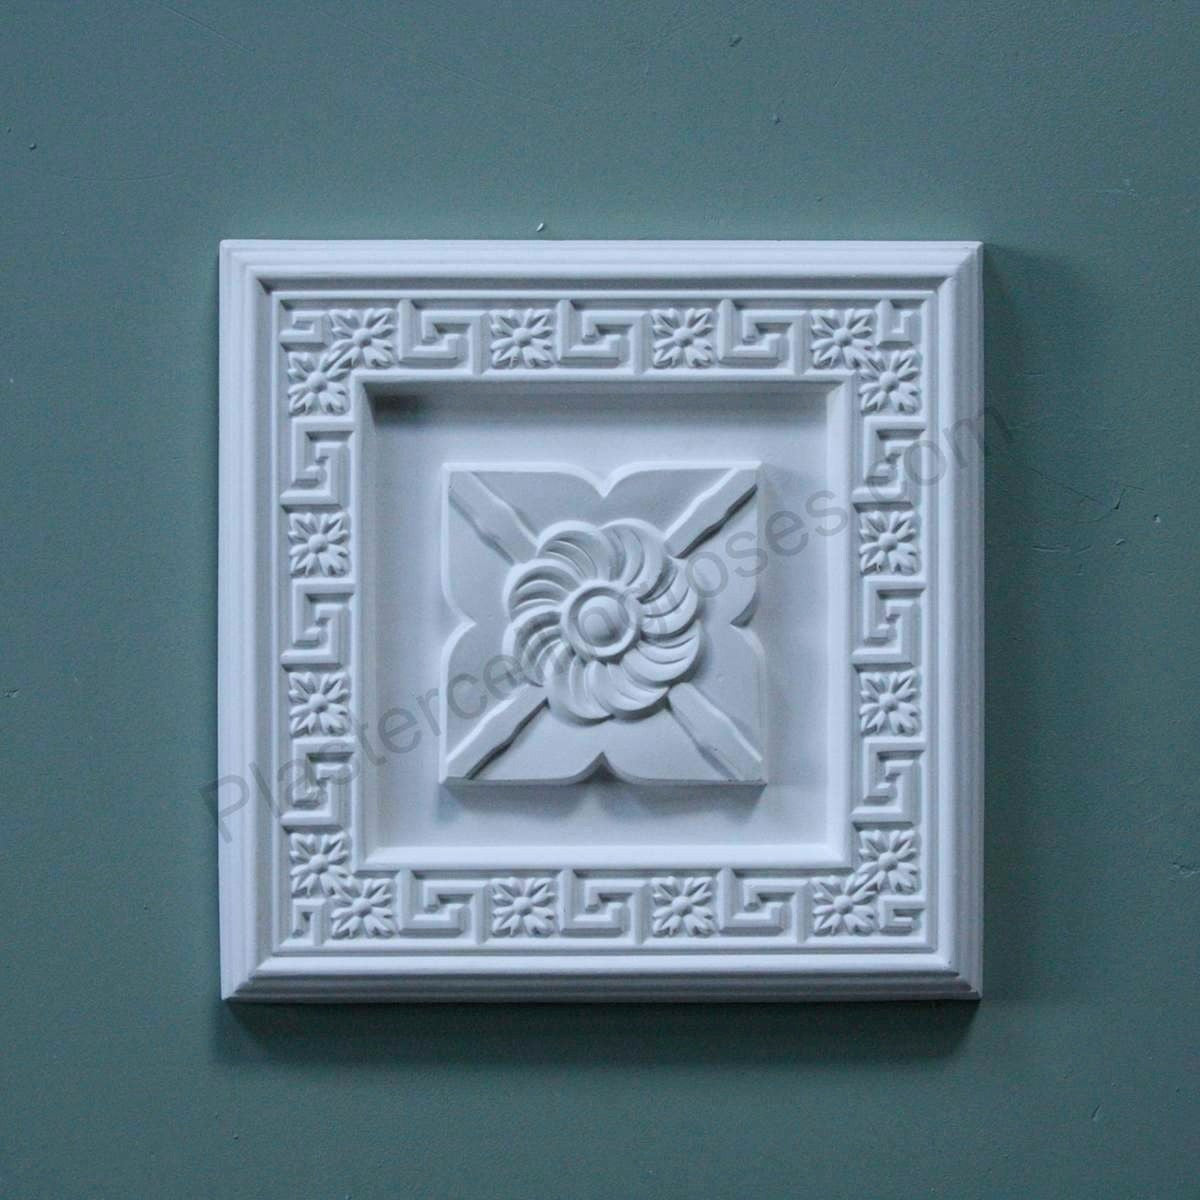 Greek Key Square Plaster Wall Plaque WP006 - PlasterCeilingRoses.com